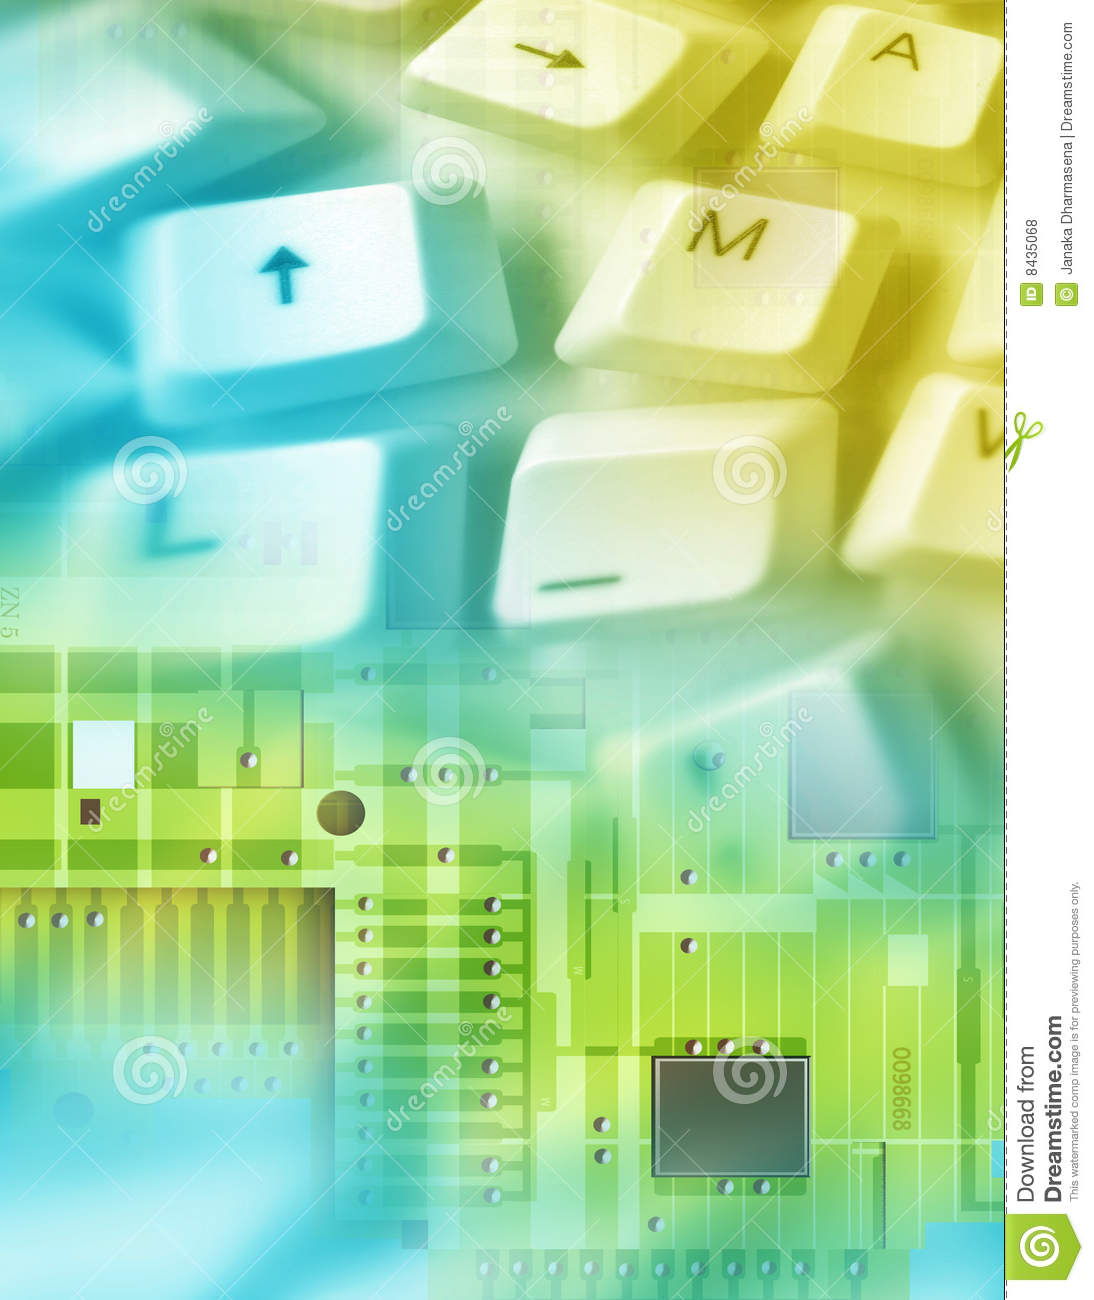 Electronic background stock photo. Image of closeup, abstract - 8435068